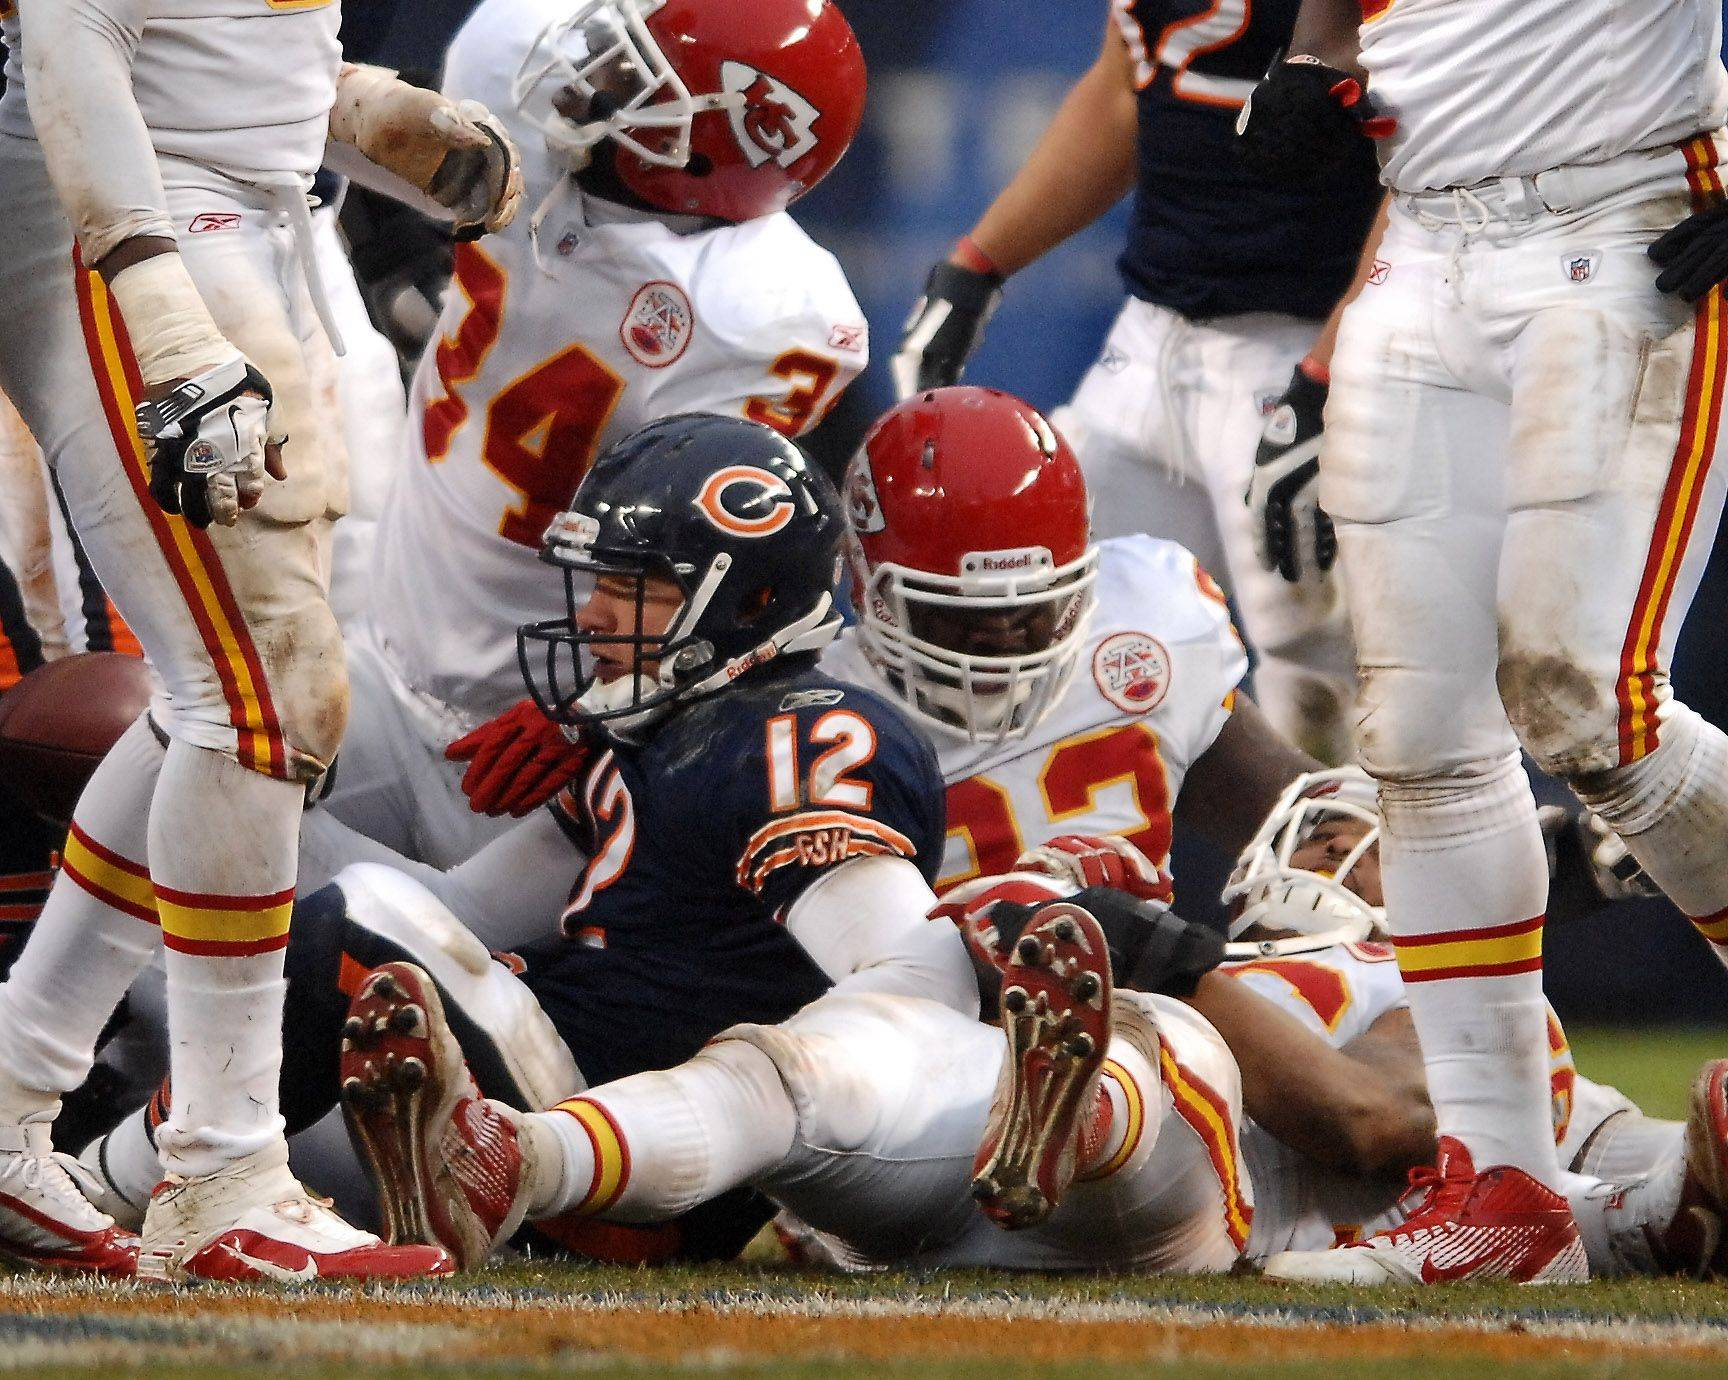 Chicago Bears quarterback Caleb Hanie (12) sits in a pile of Kansas City defenders after a fourth quarter sack during Sunday's game at Soldier Field in Chicago.